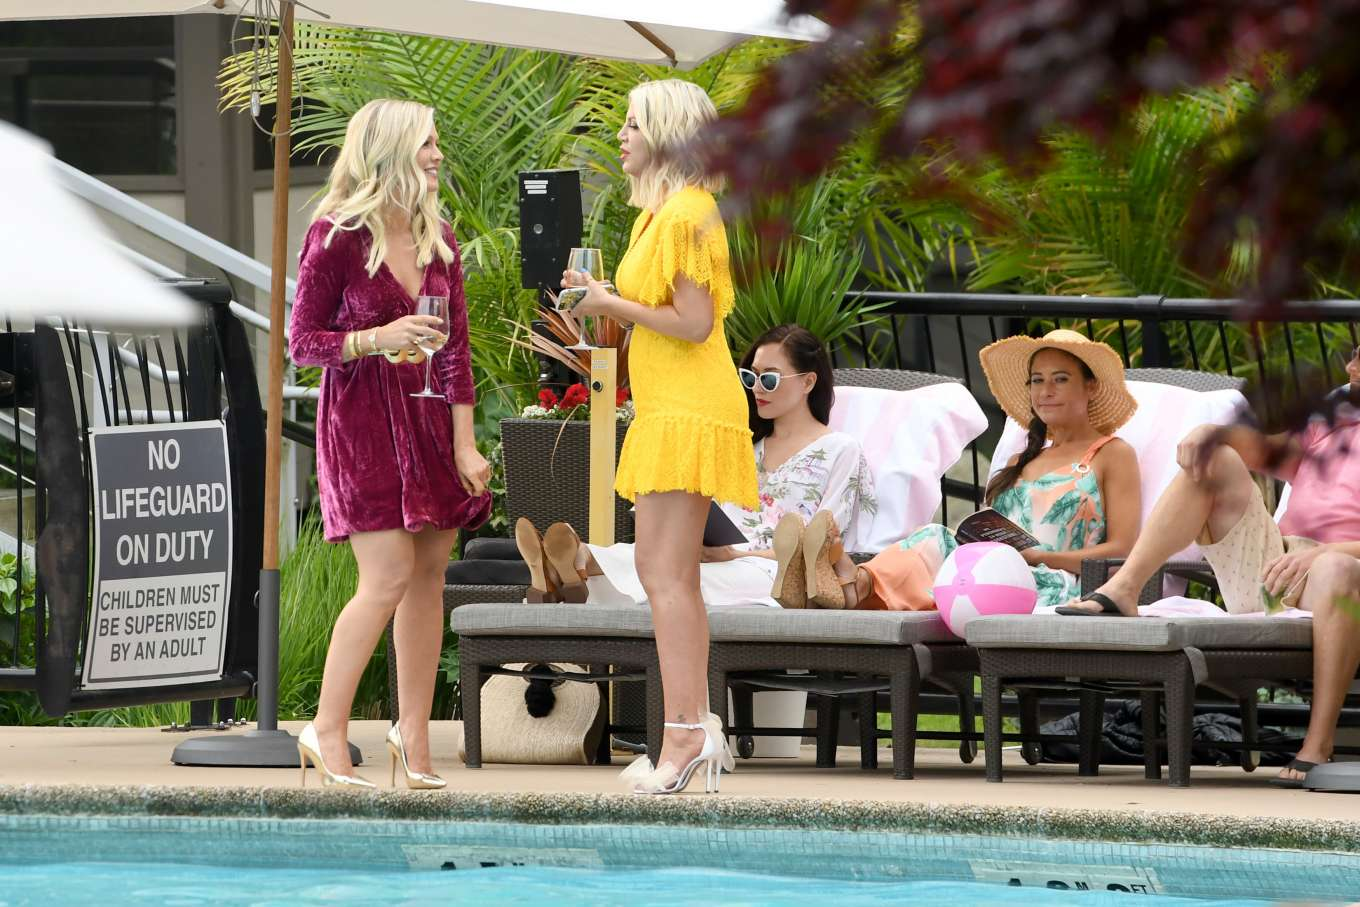 Tori Spelling 2019 : Tori Spelling and Jennie Garth: On the set of Beverly Hills 90210-07